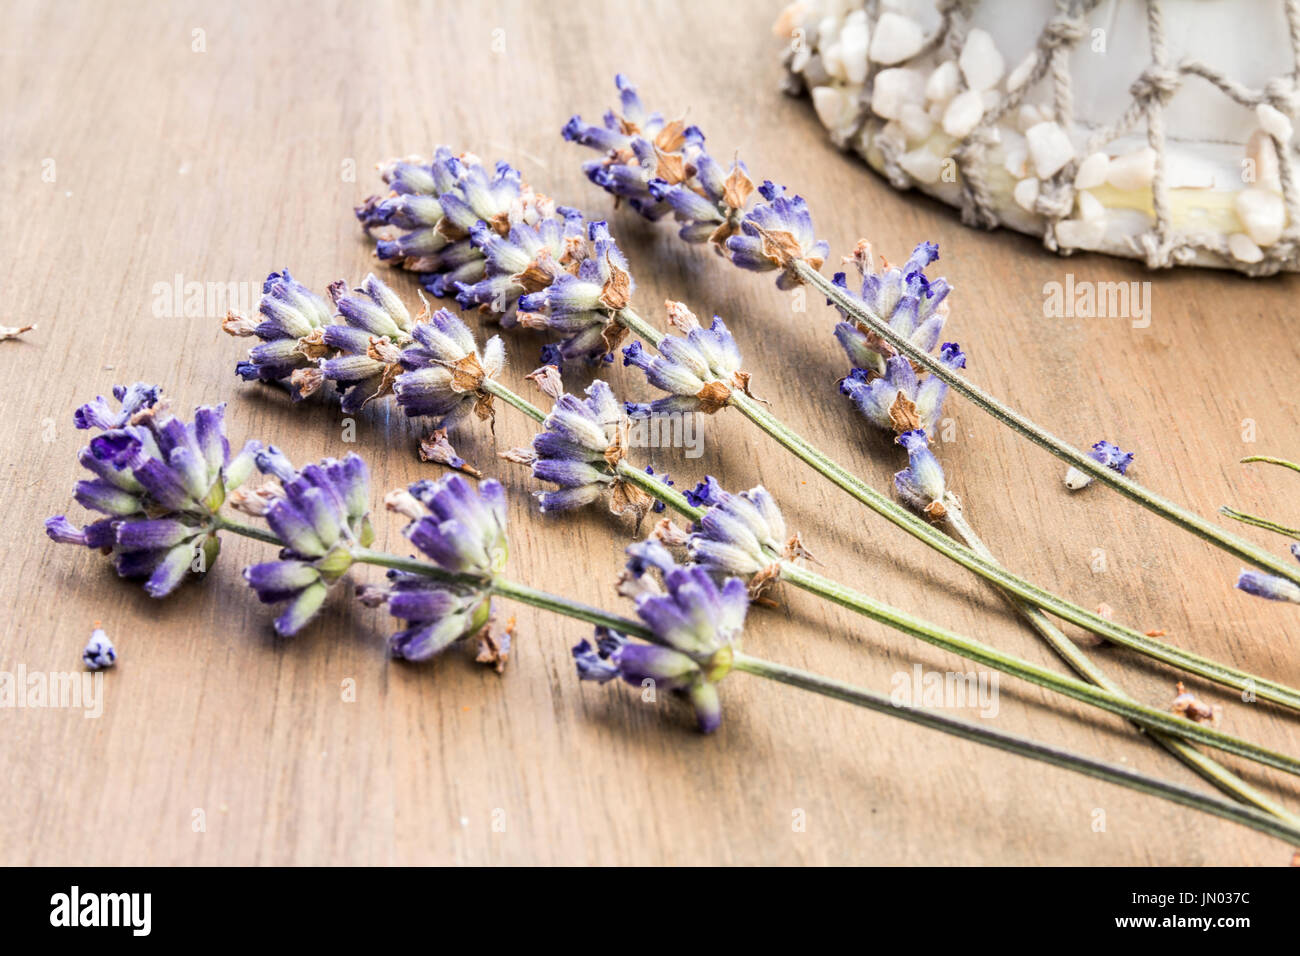 Display of Dried Lavender with a Seashell ornament in the background on a light oak Wooden Table Stock Photo